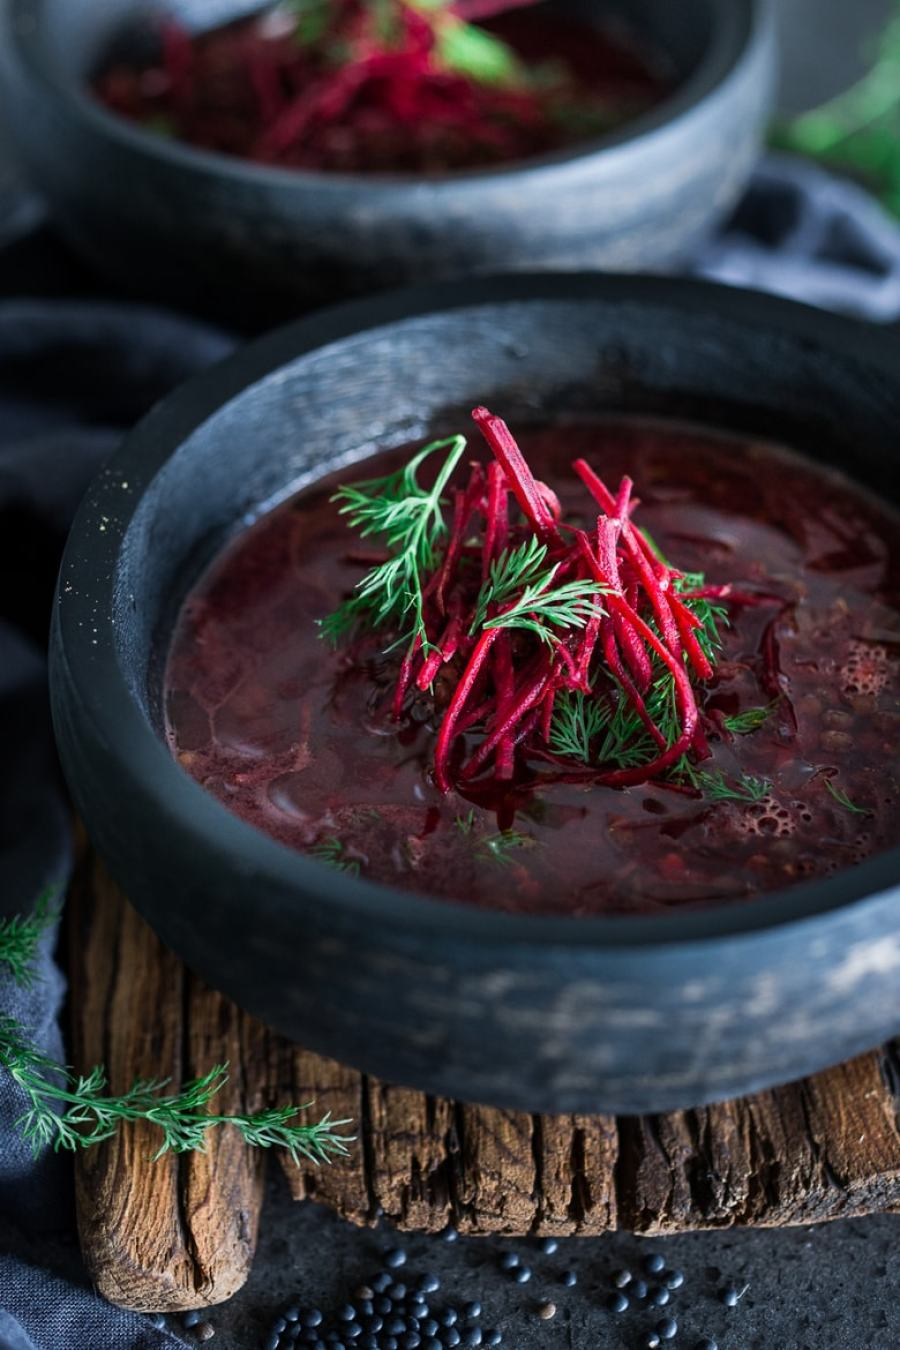 Detox Lentil and Beet Broth Soup...packed full of antioxidants that aid the liver in detoxing and cleansing our bodies. Vegan, GF | www.feastingathome.com